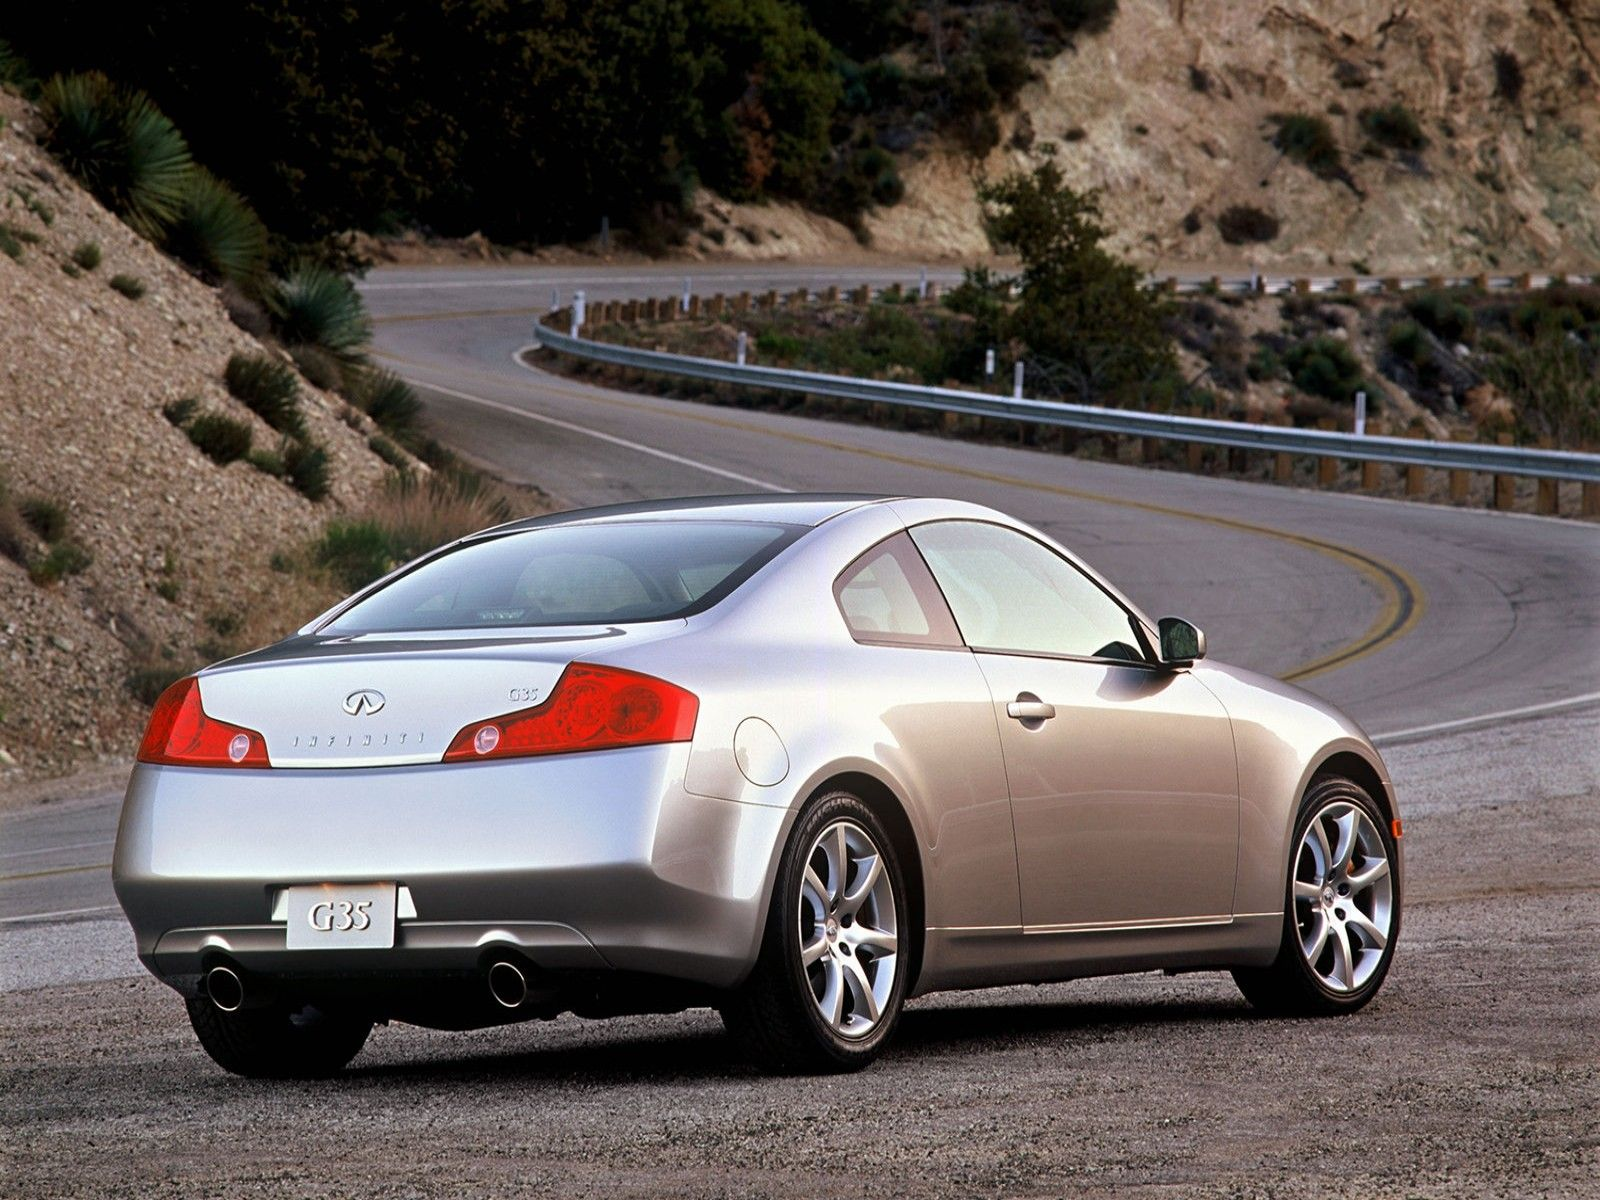 2003 Infiniti G35 Coupe Wallpaper - http://wallpaperzoo.com/2003-